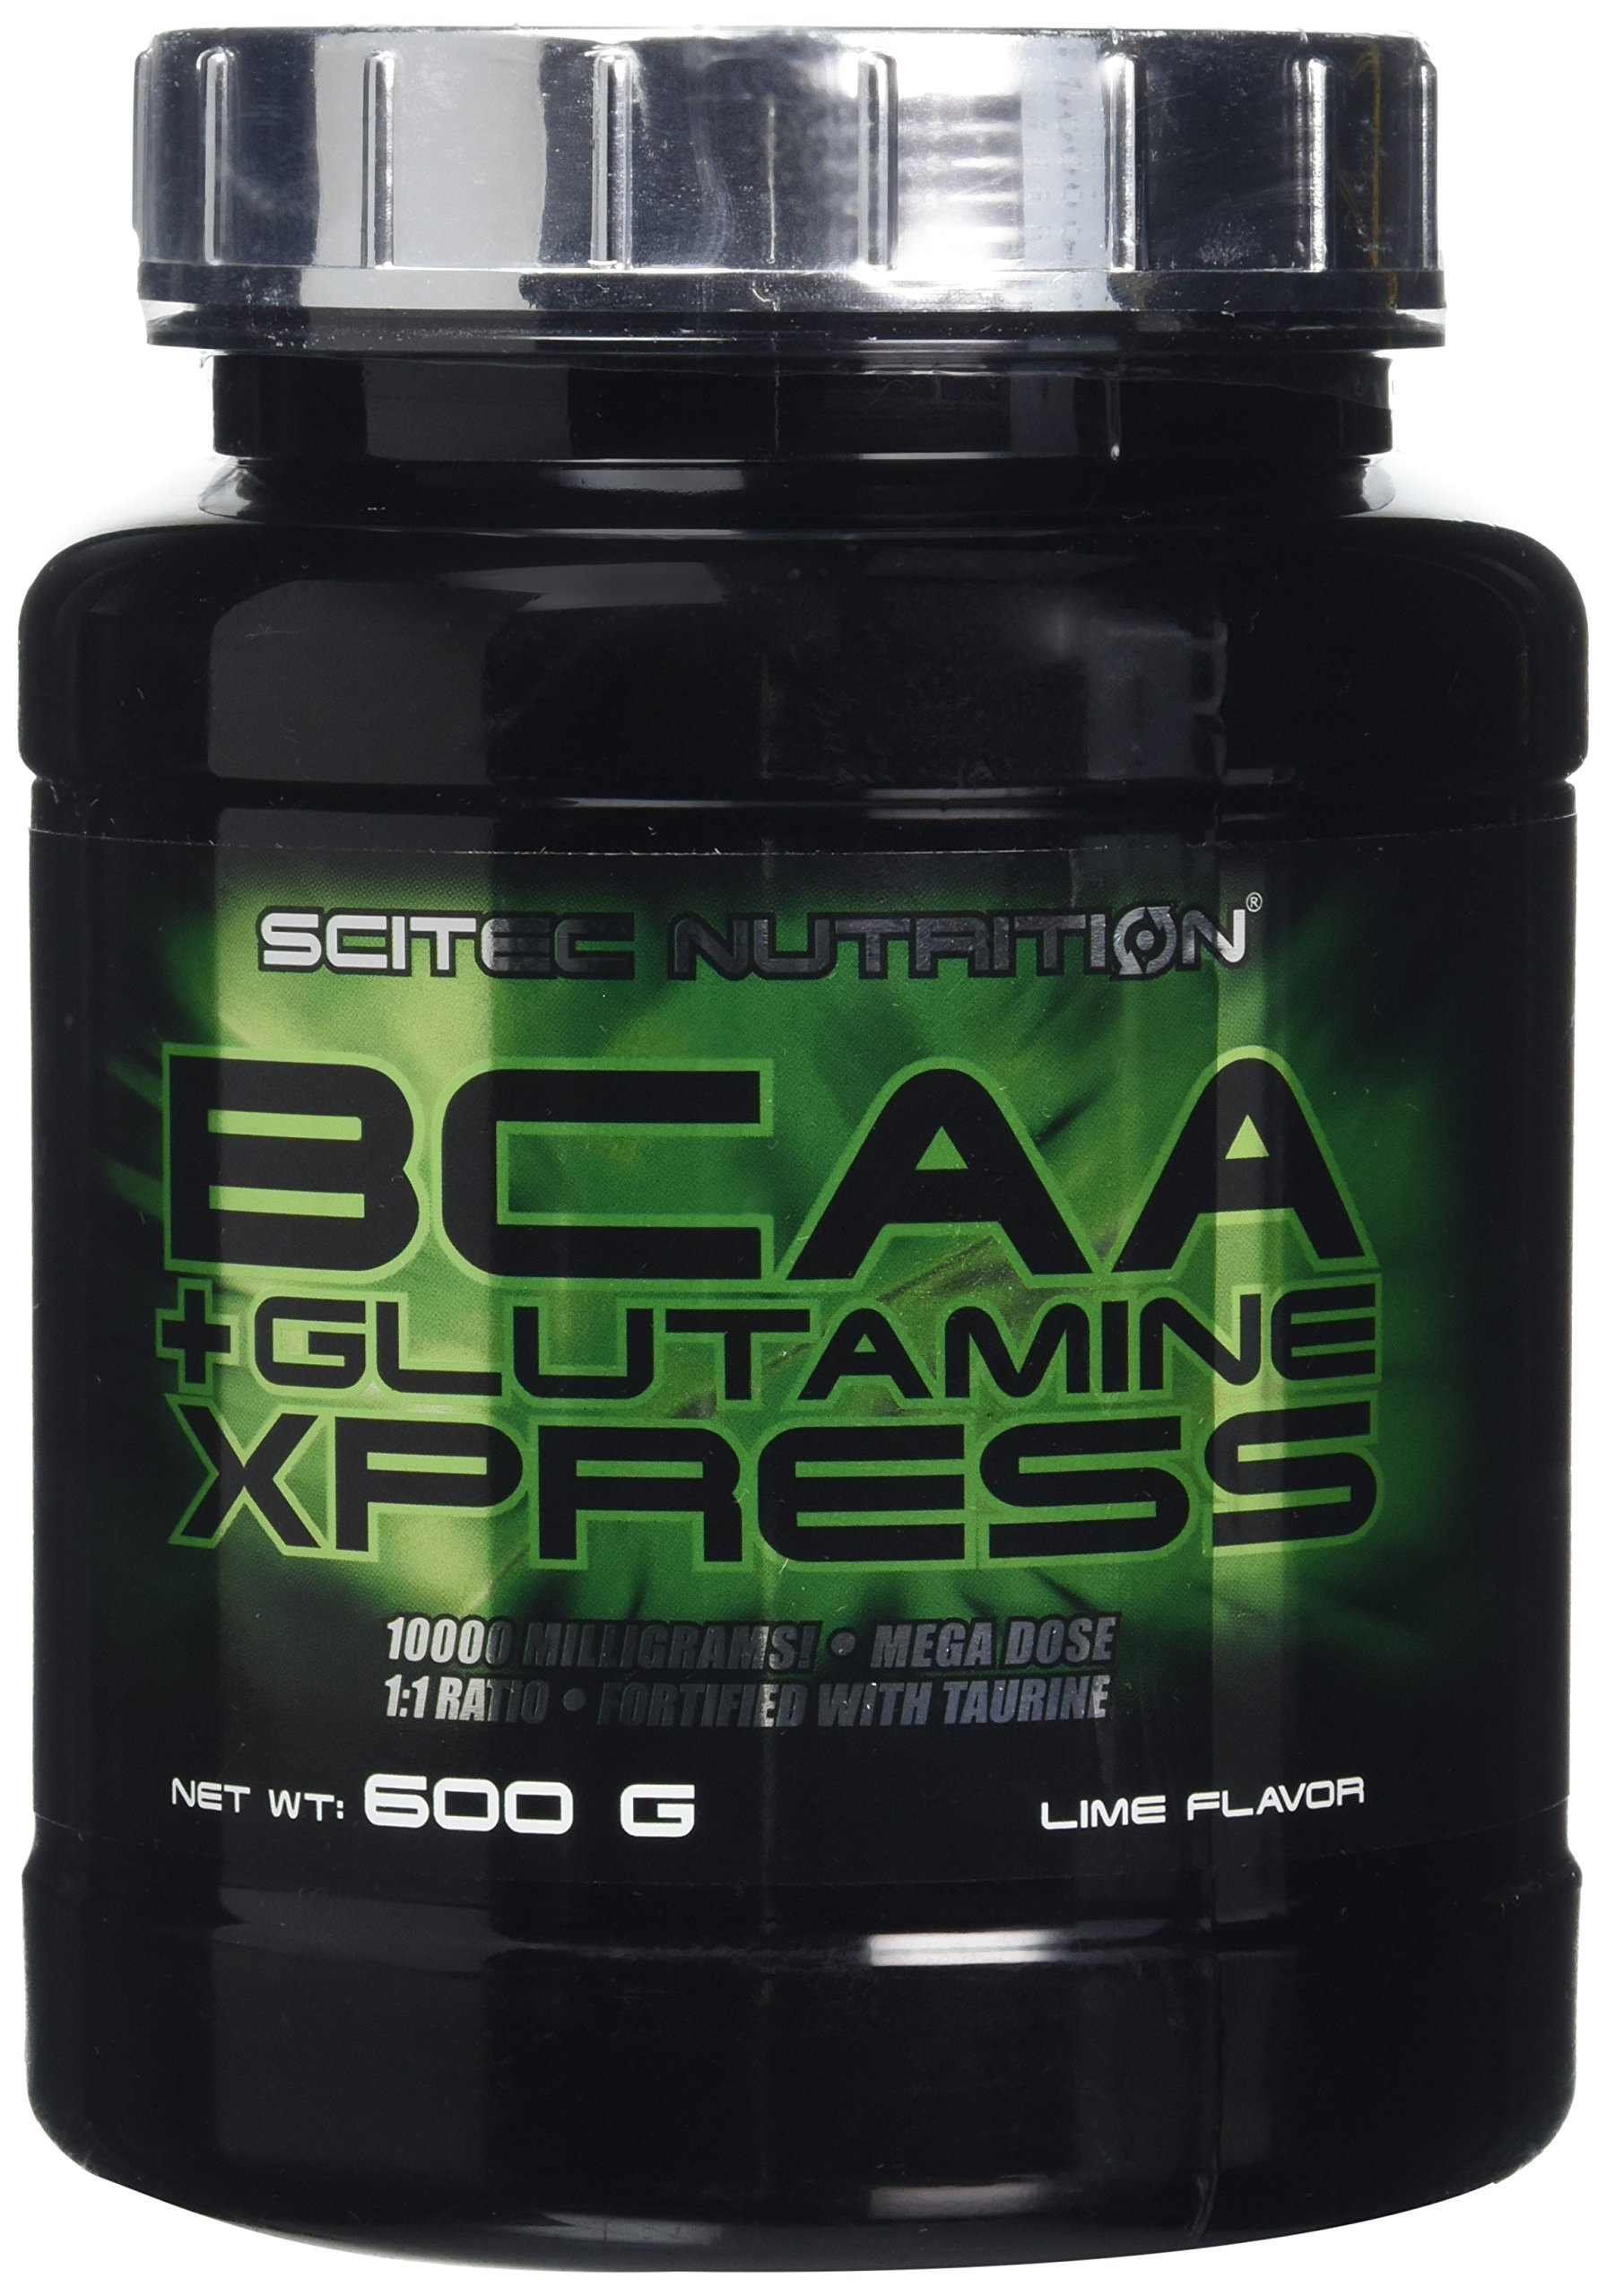 81SUaW 661L - Scitec Nutrition BCAA + Glutamine Xpress, Fortified with Taurine, Sugar Free, 600 g, Lime